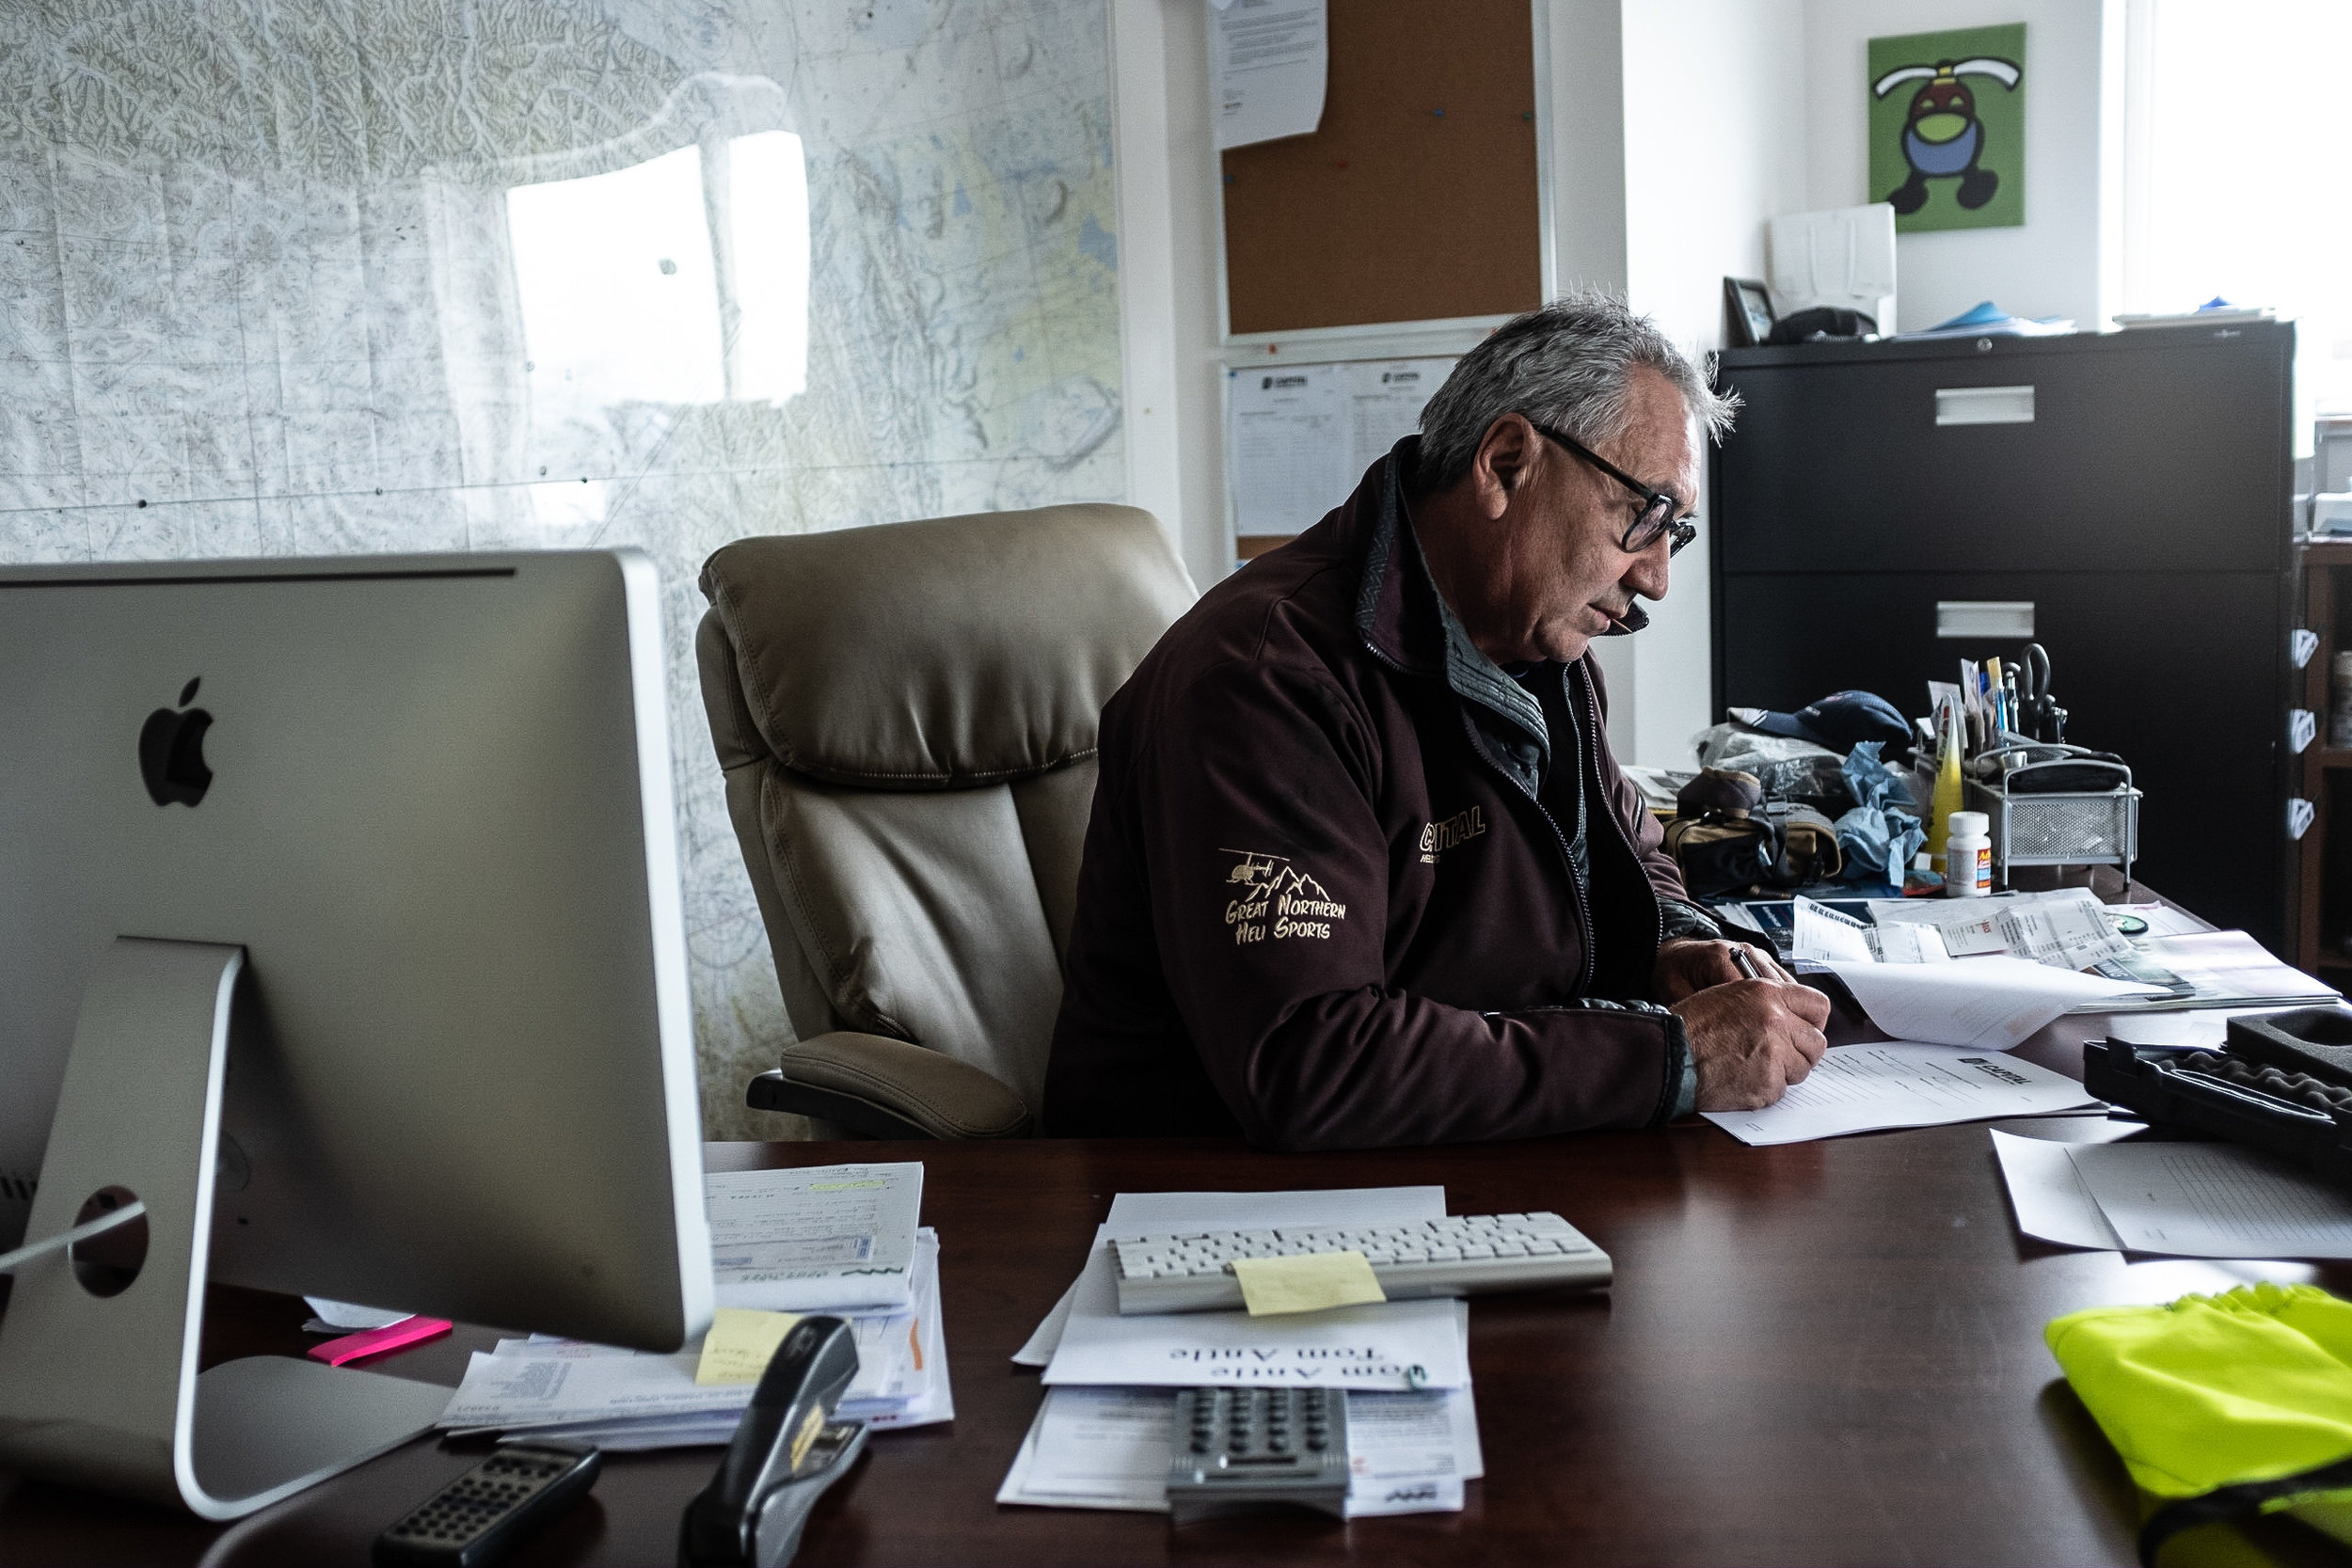 Delmar Washington, 60, spends around an hour each morning preparing paperwork and arranging flight schedules before departing on his first flight.